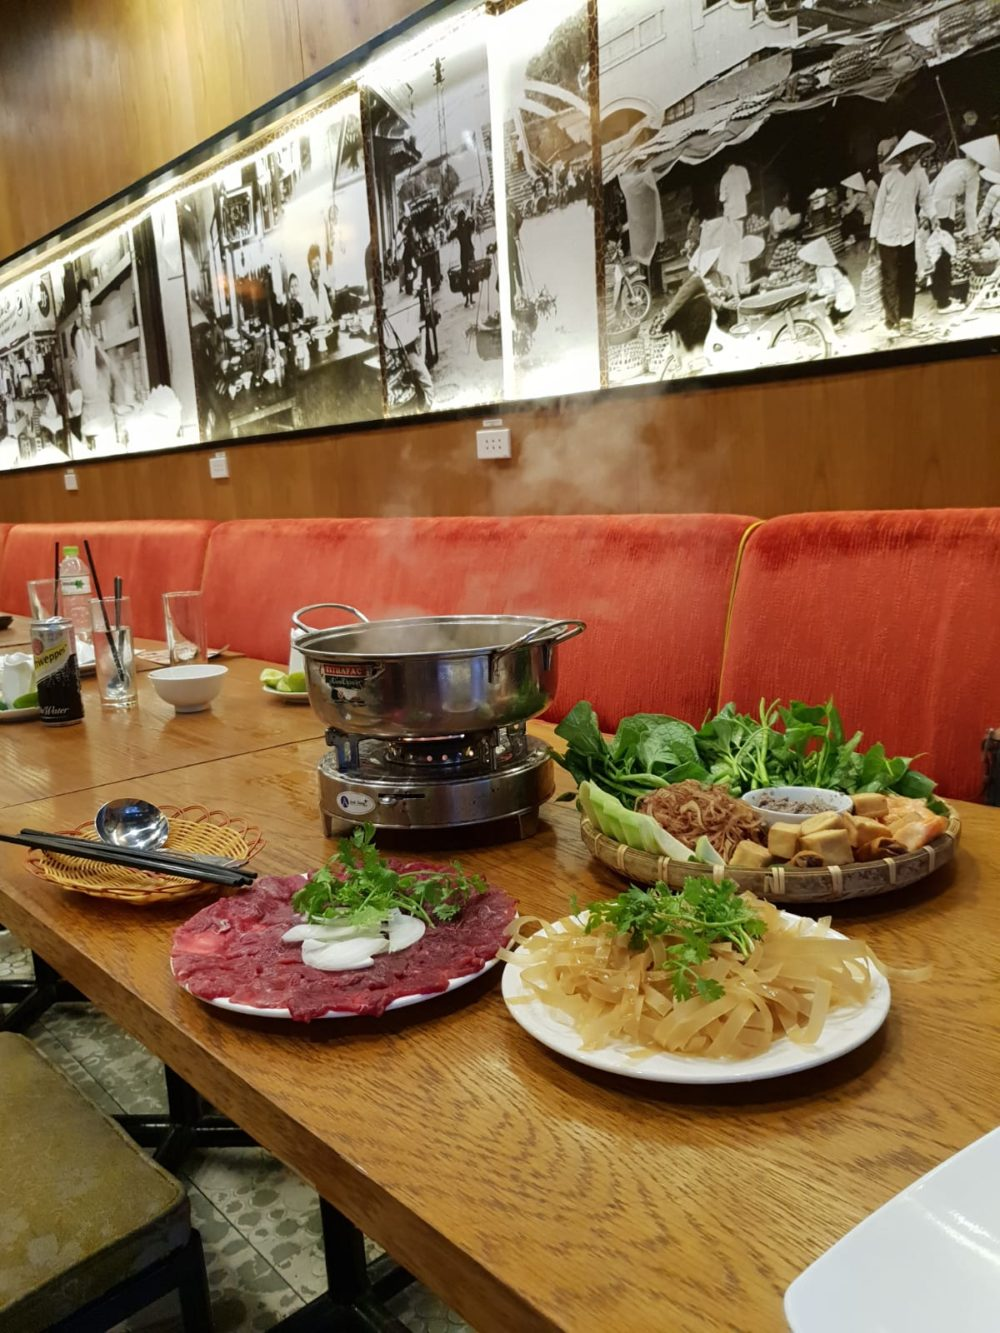 The feast of small dishes